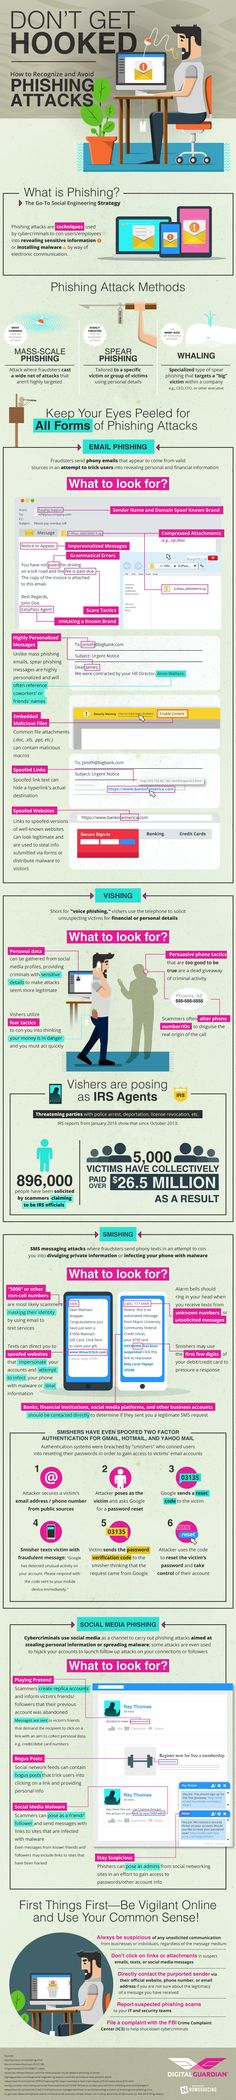 Improve Your Internet Security Infographic  Infographic